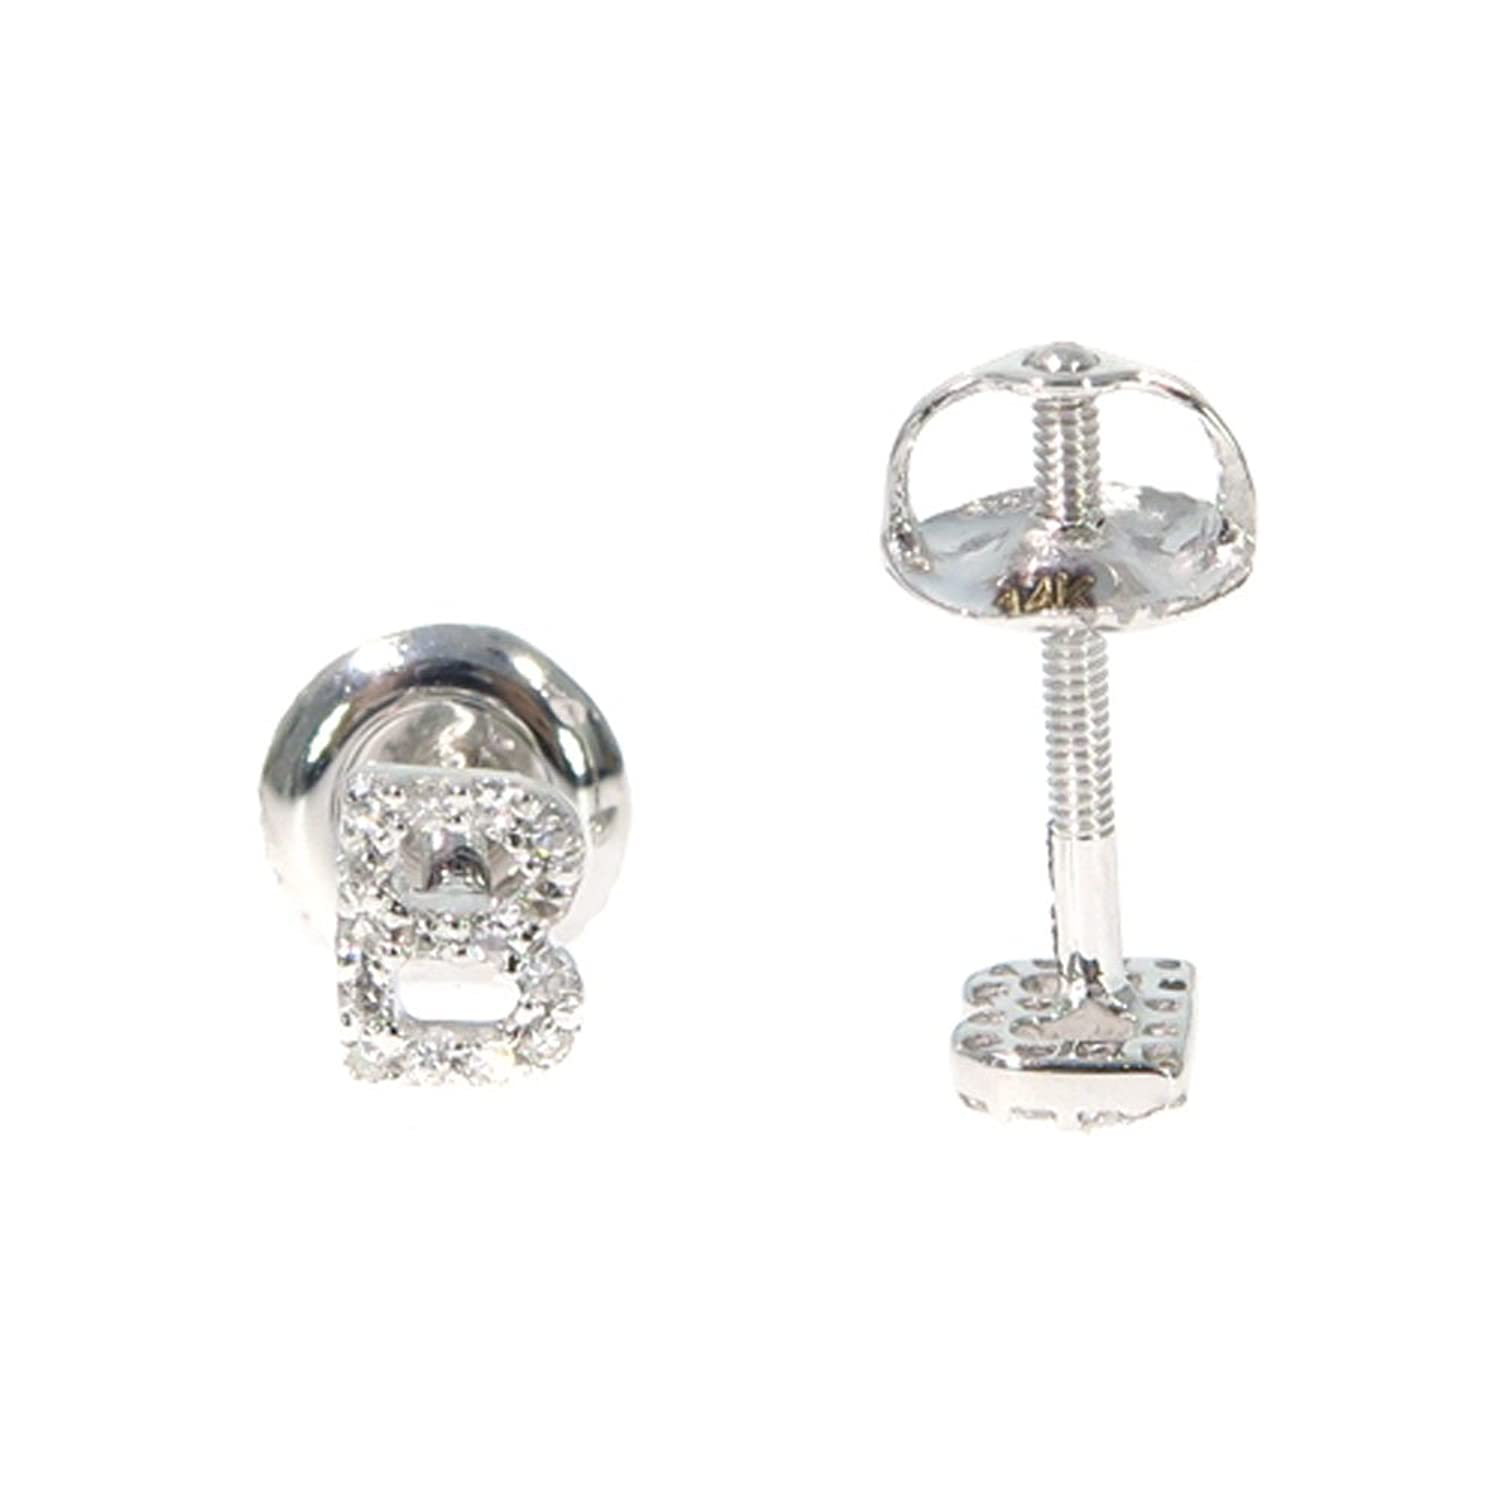 Amazon: 14k White Gold Genuine Real Round Cut Diamond Initial Letter  Stud Earrings With Secure Screw Backs (b): Jewelry